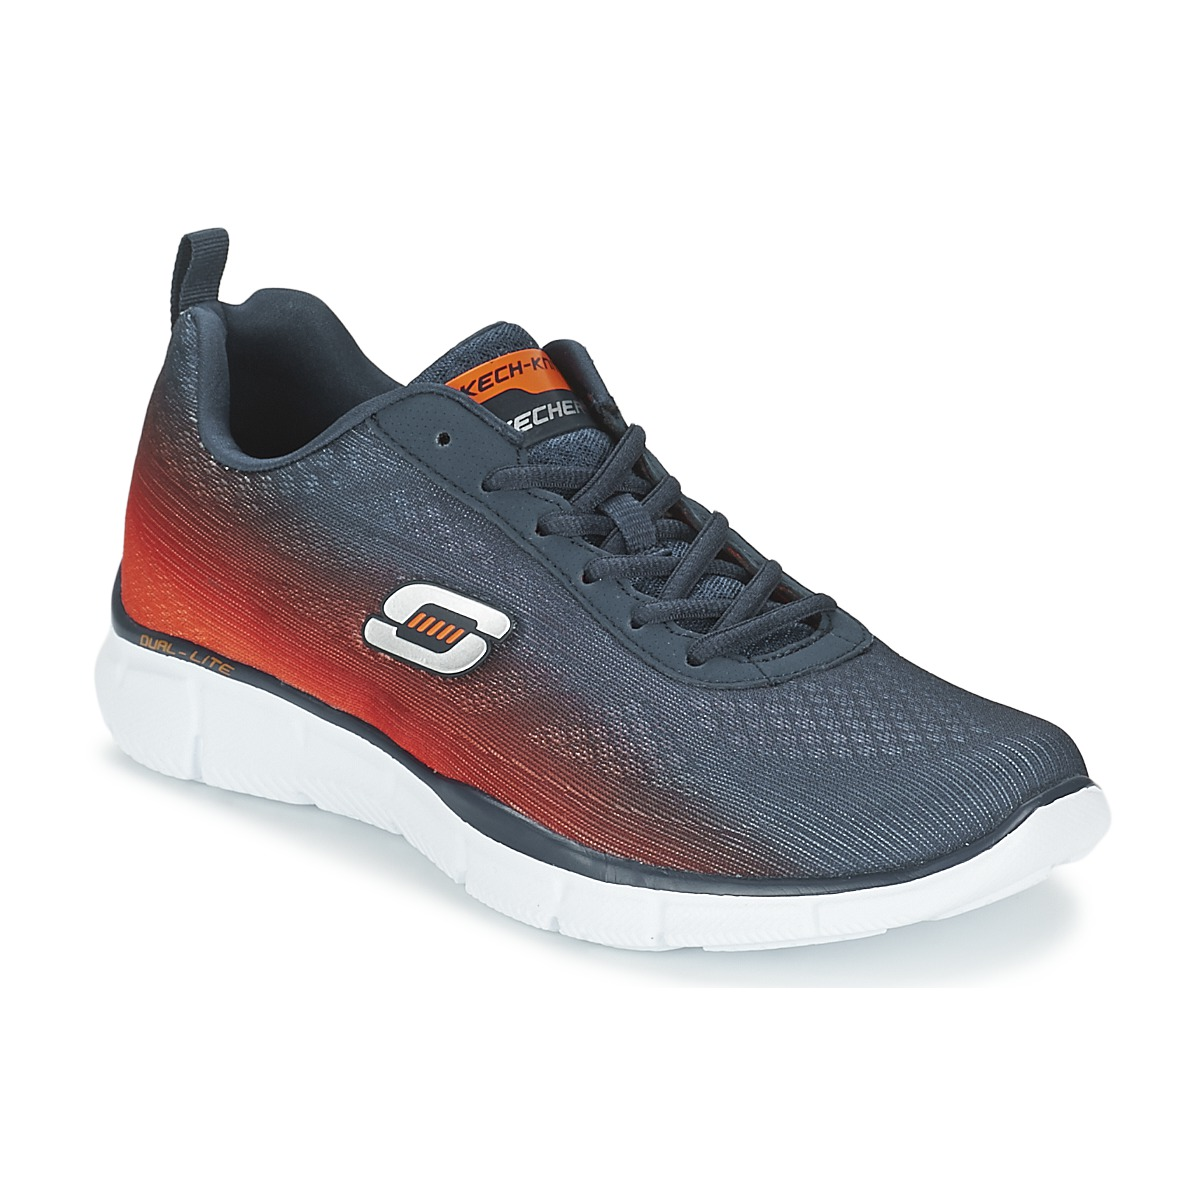 Chaussures-de-sport Skechers EQUALIZER Marine / Orange